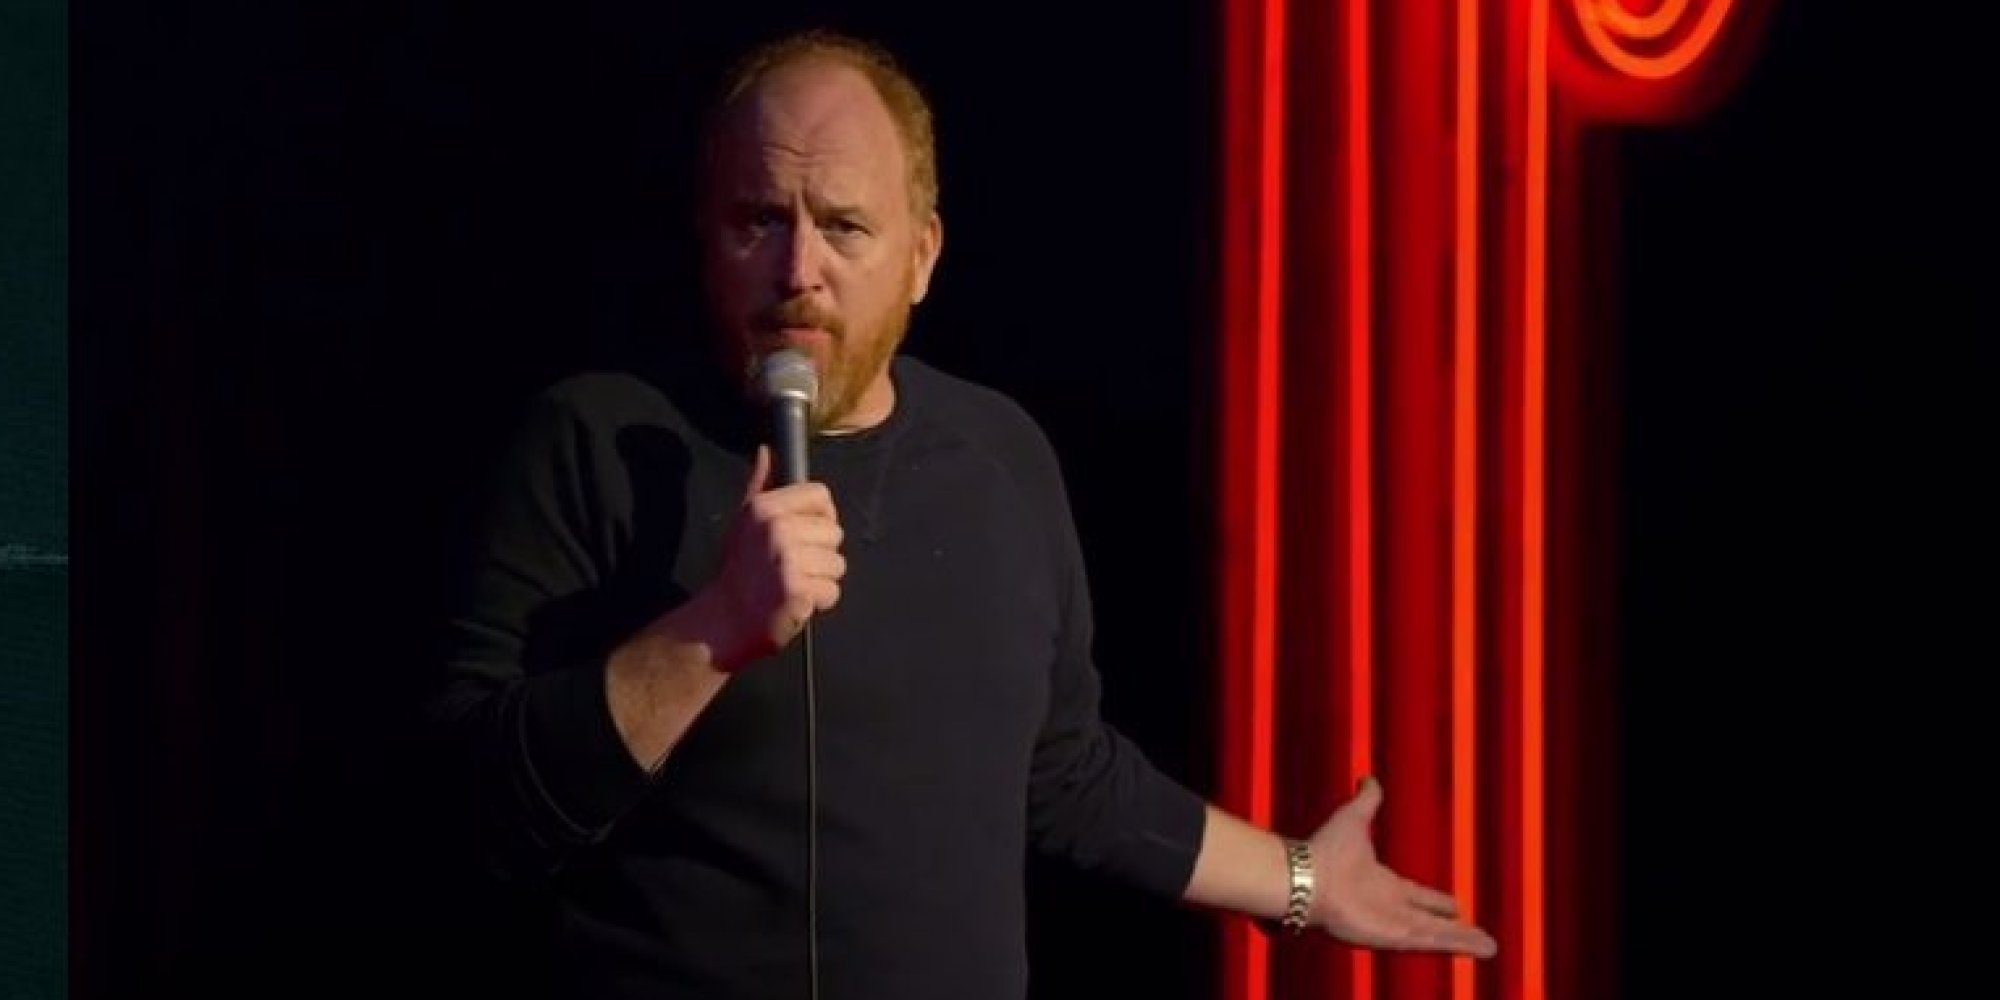 Louis C K Releases 39 Live At The Comedy Store 39 Special Sends 39 Very Long 39 Email To Fans Huffpost